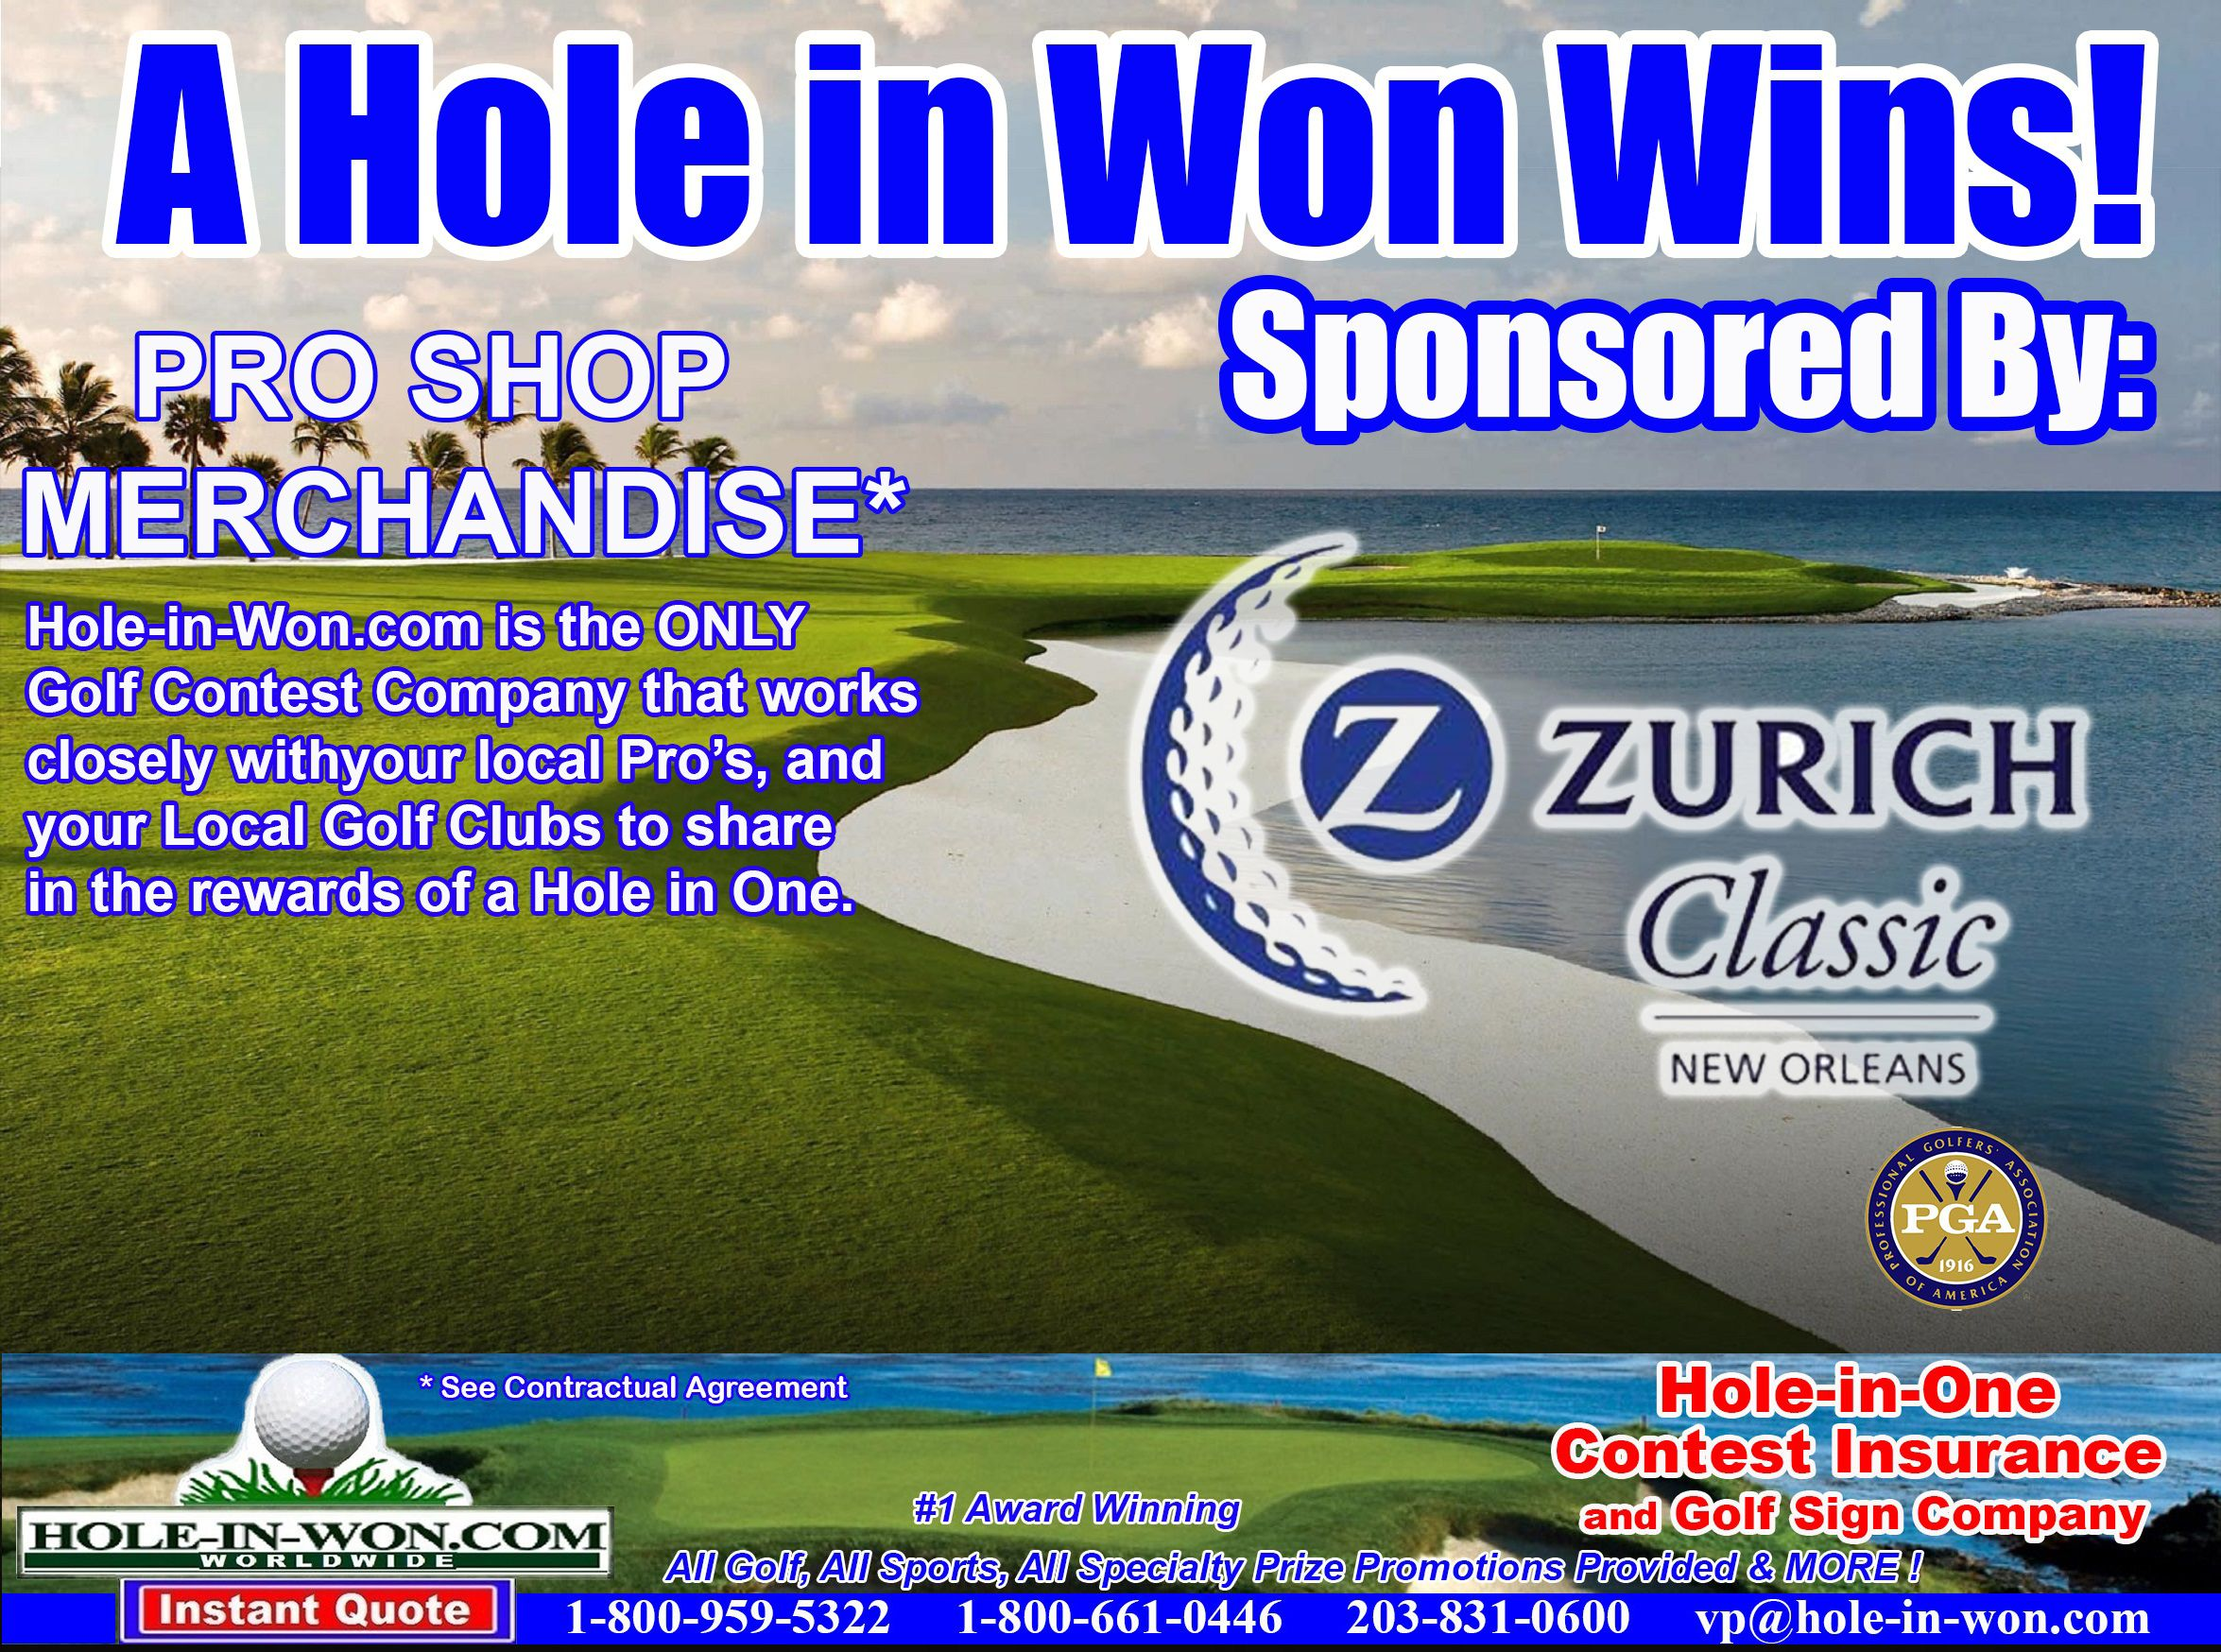 Zurich Insurance Agents Hole in One Insurance Putting